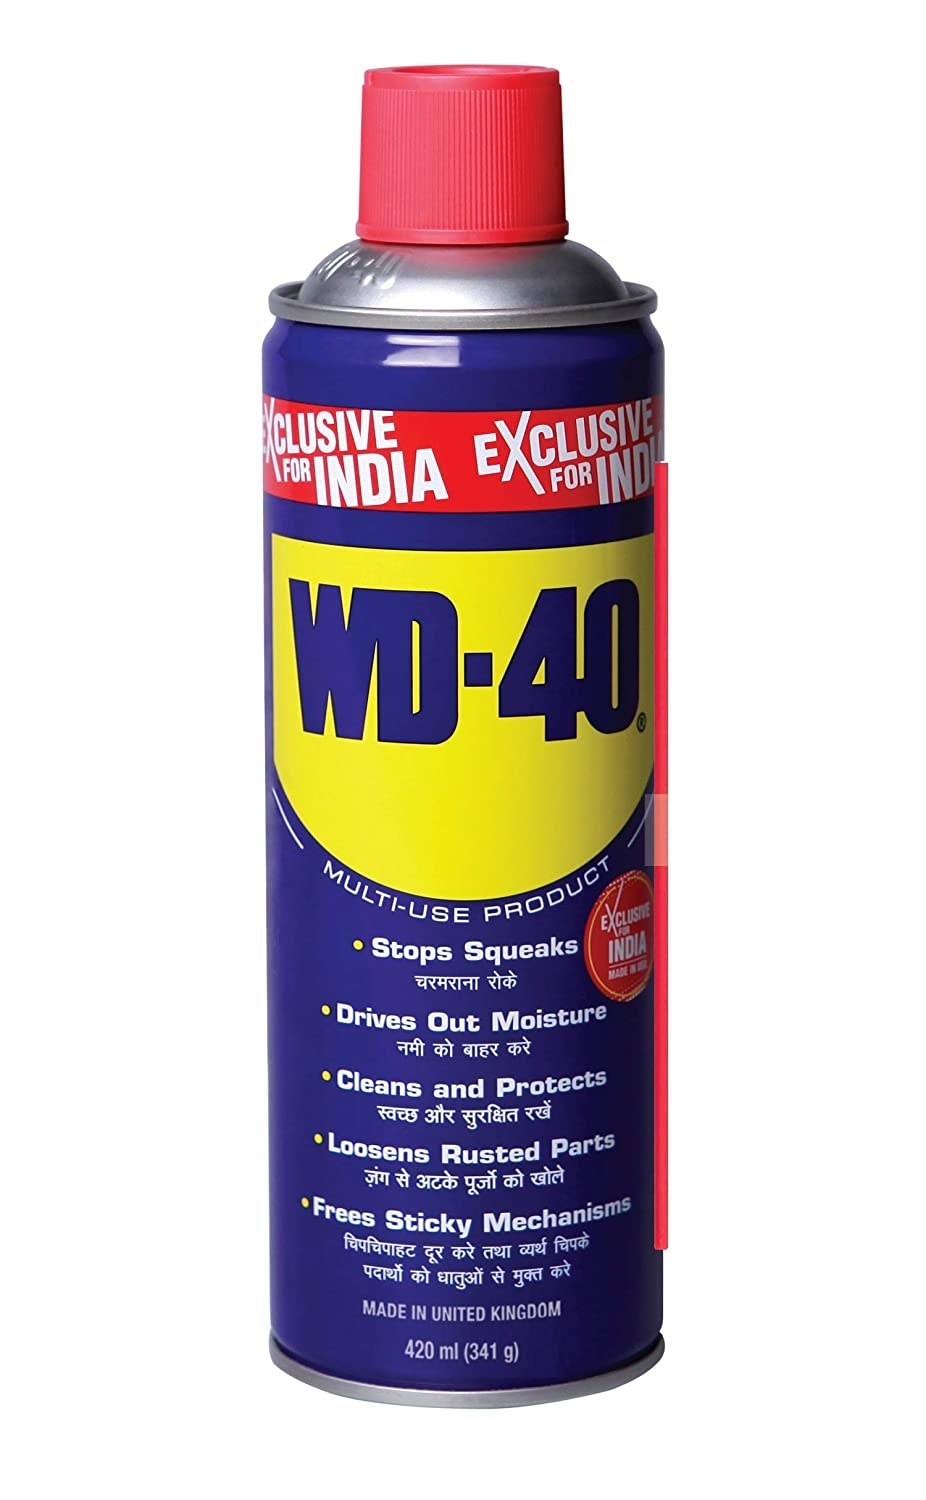 A can of WD-40 spray